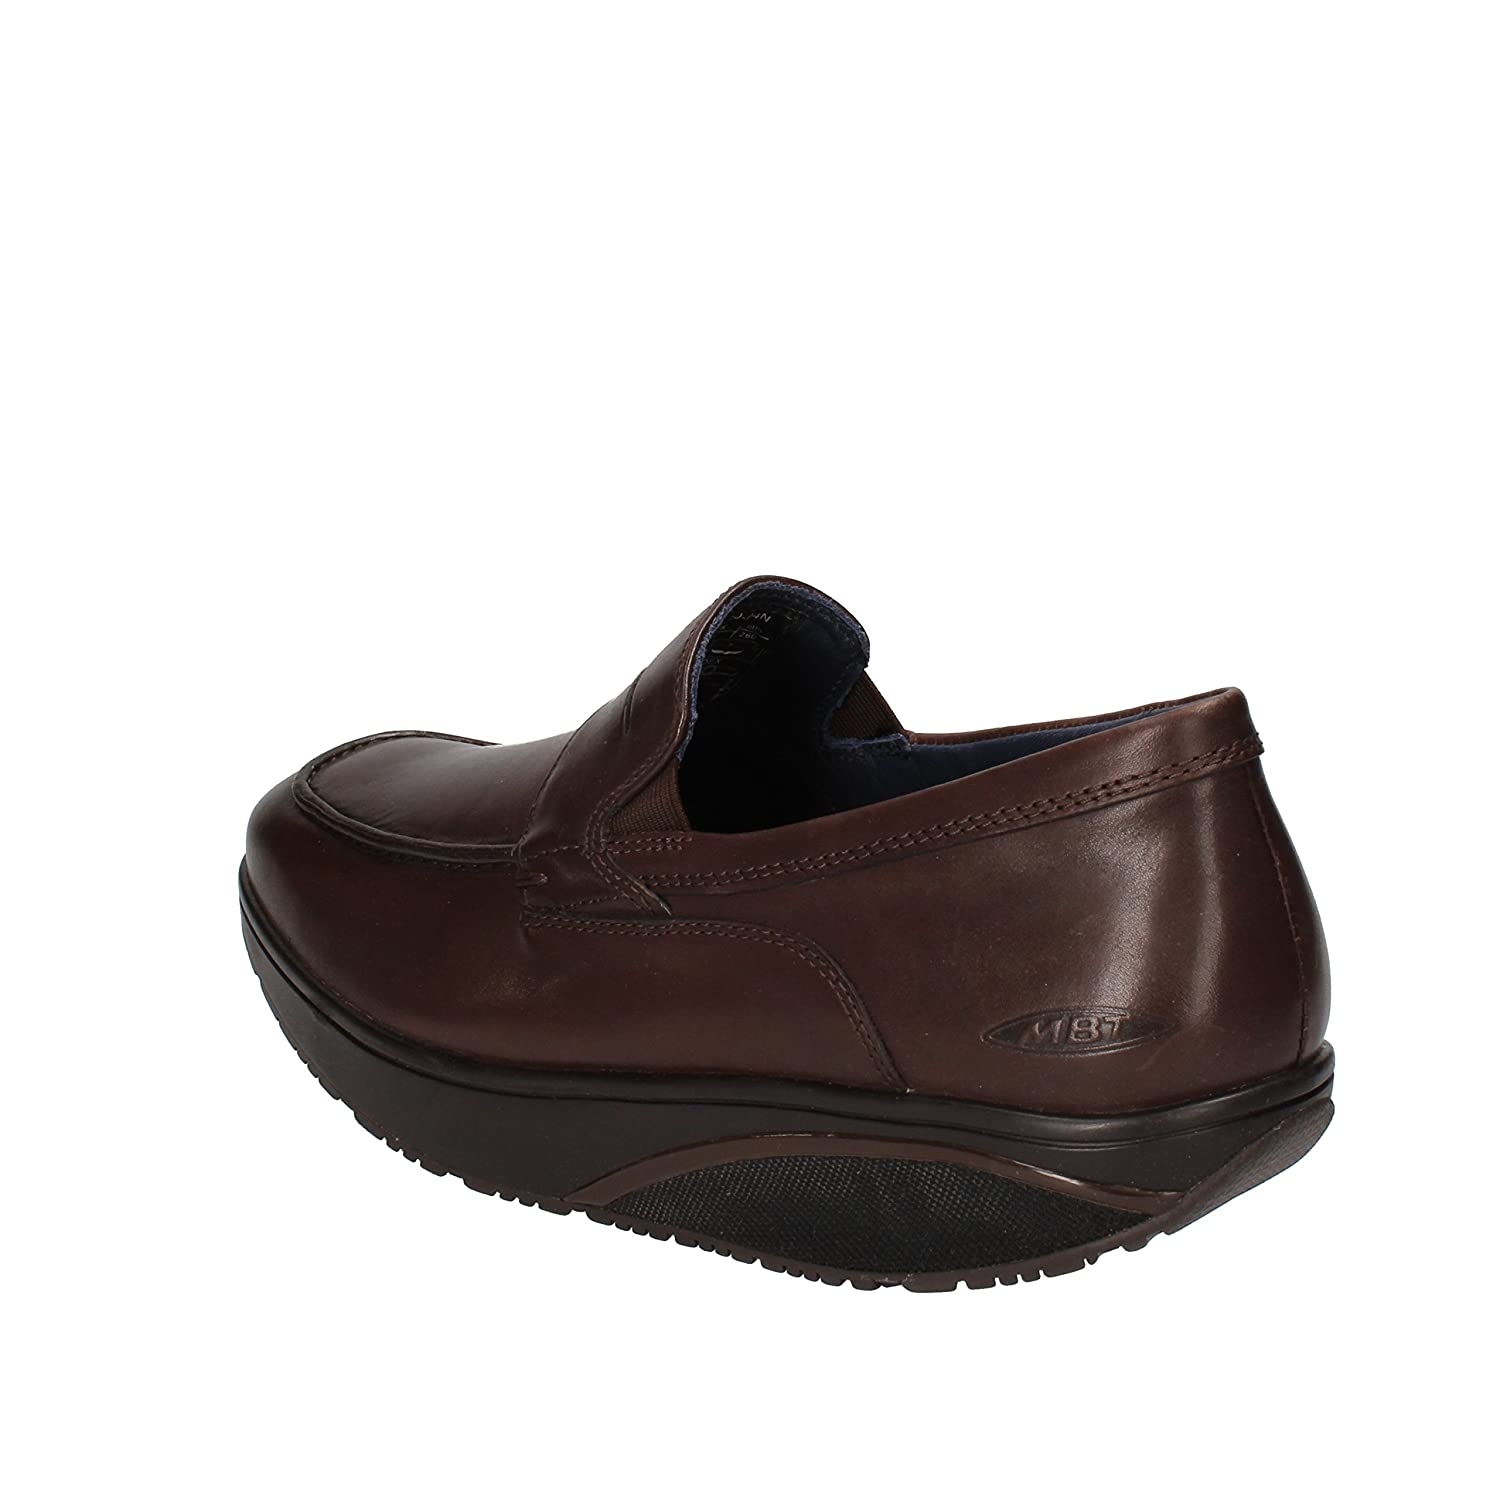 618deca8fec5 Amazon.com   MBT Loafers-Shoes Mens Leather Brown 5/5.5 US   Loafers ...